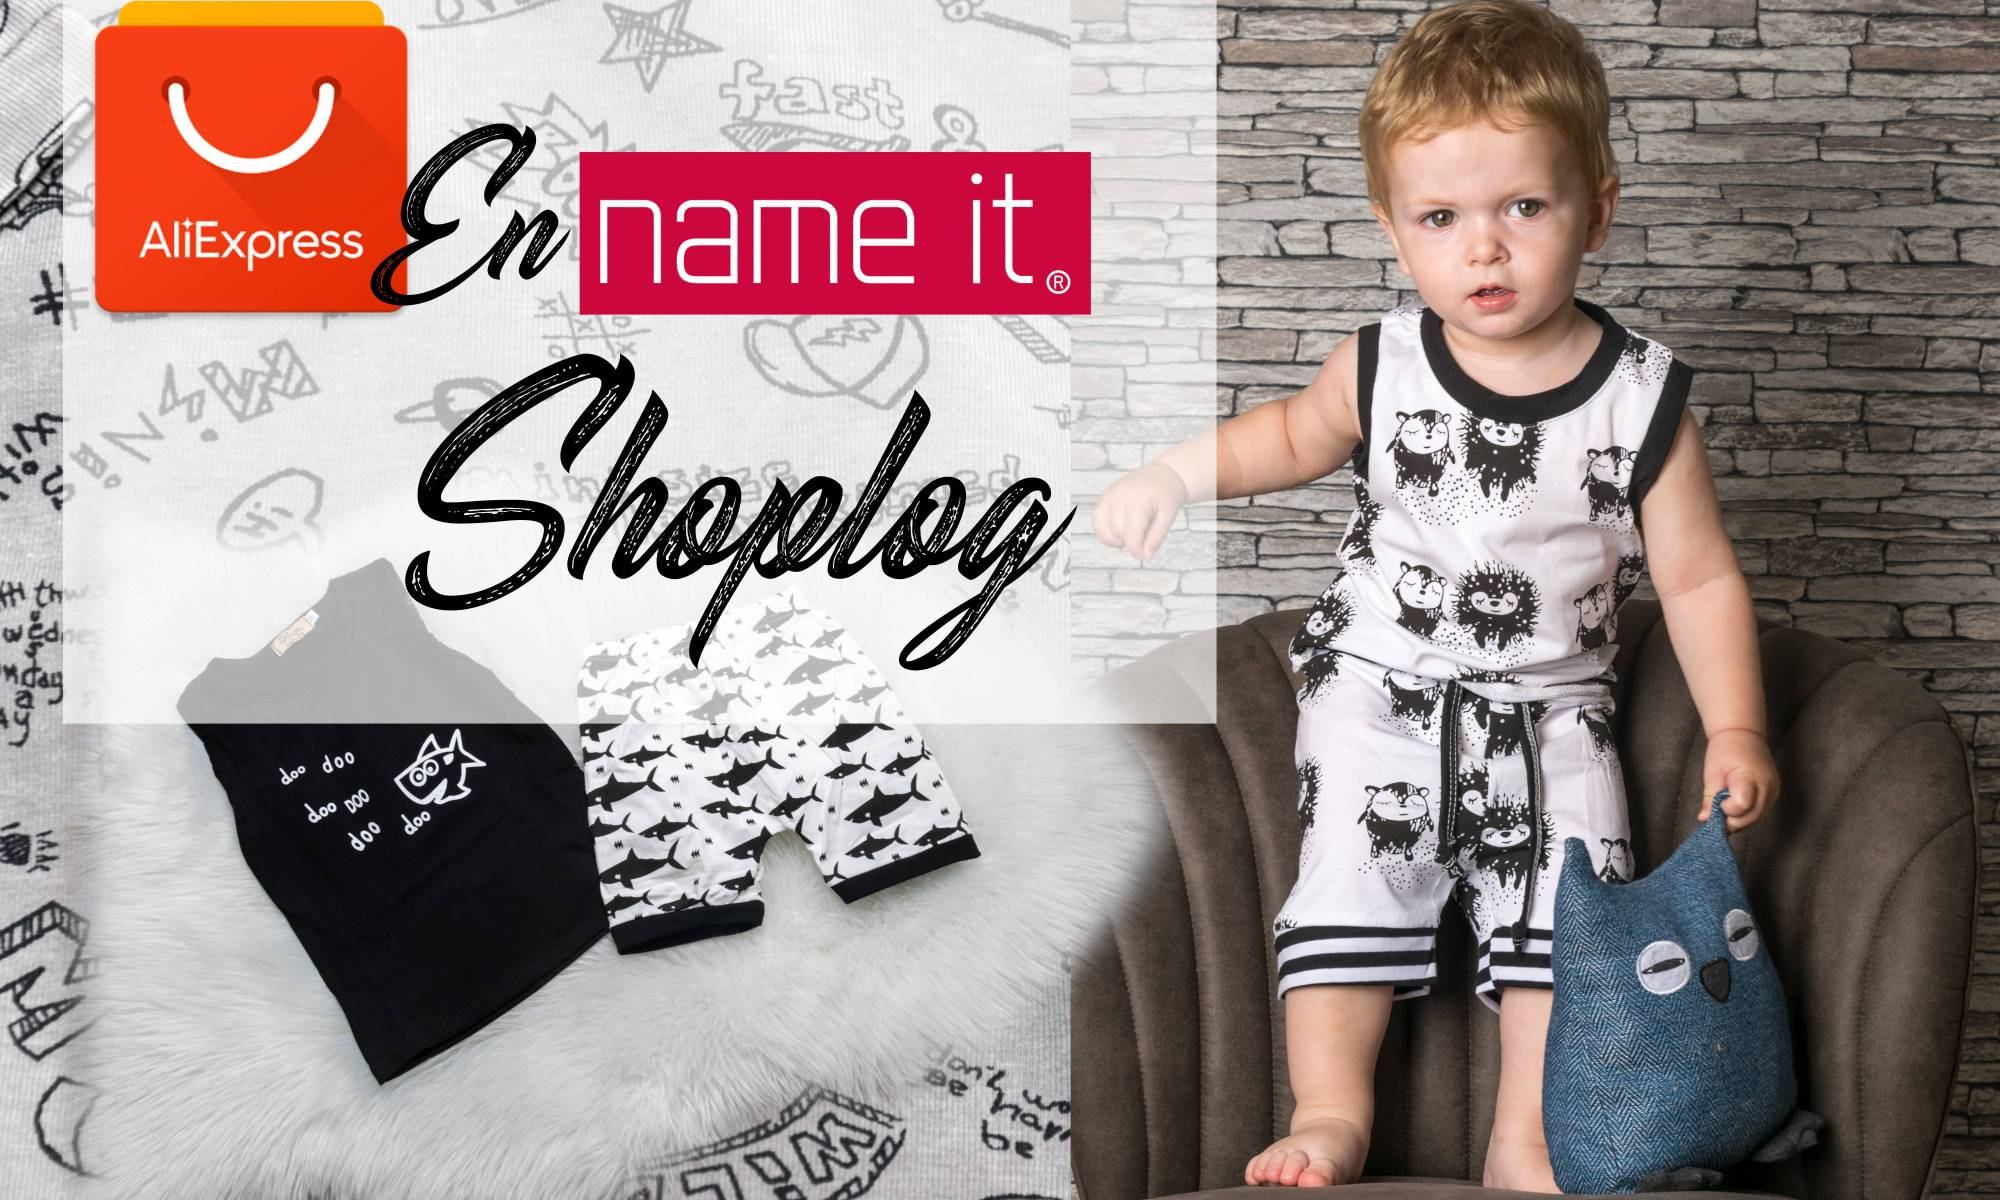 Shoplog AliExpress en Name it jongenskleding - Pyjama zwart wit haai to the moon and back onesie slabbers monochrome fox